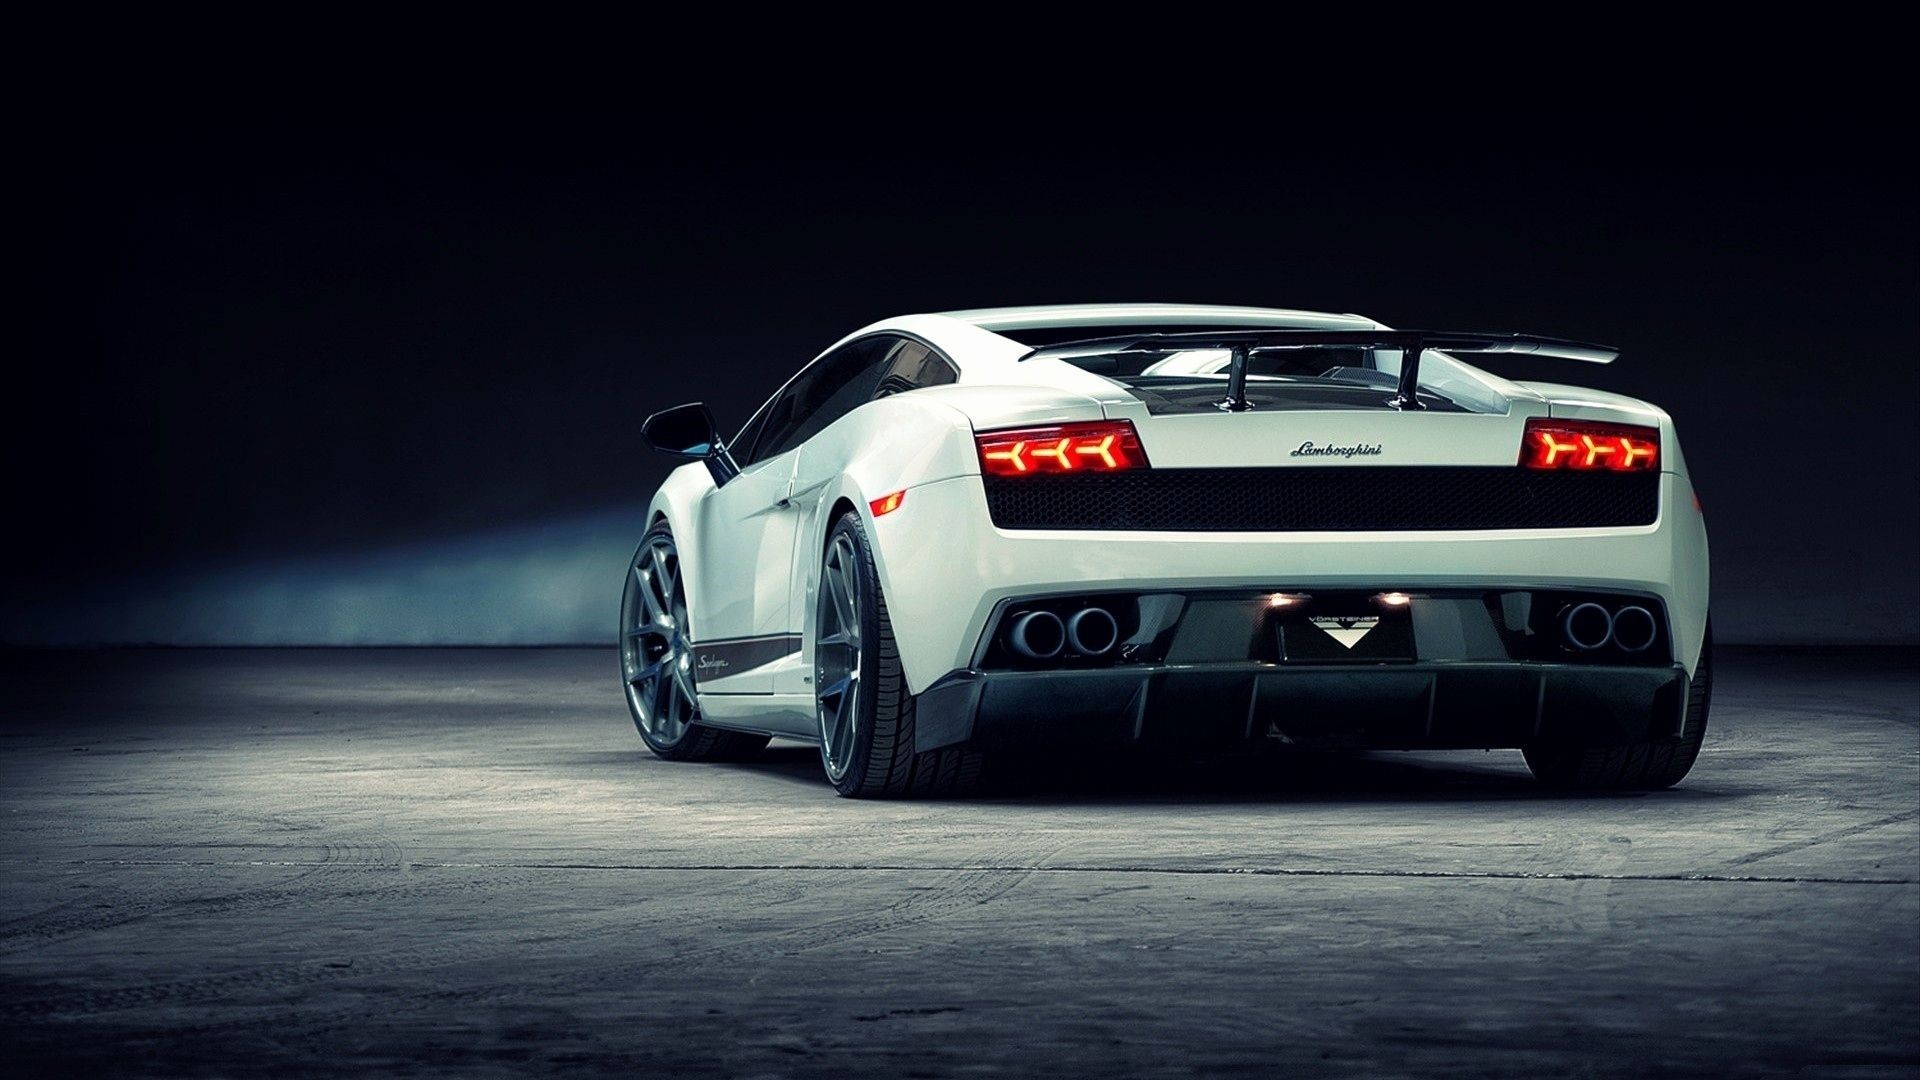 Awesome Cars Windows Background